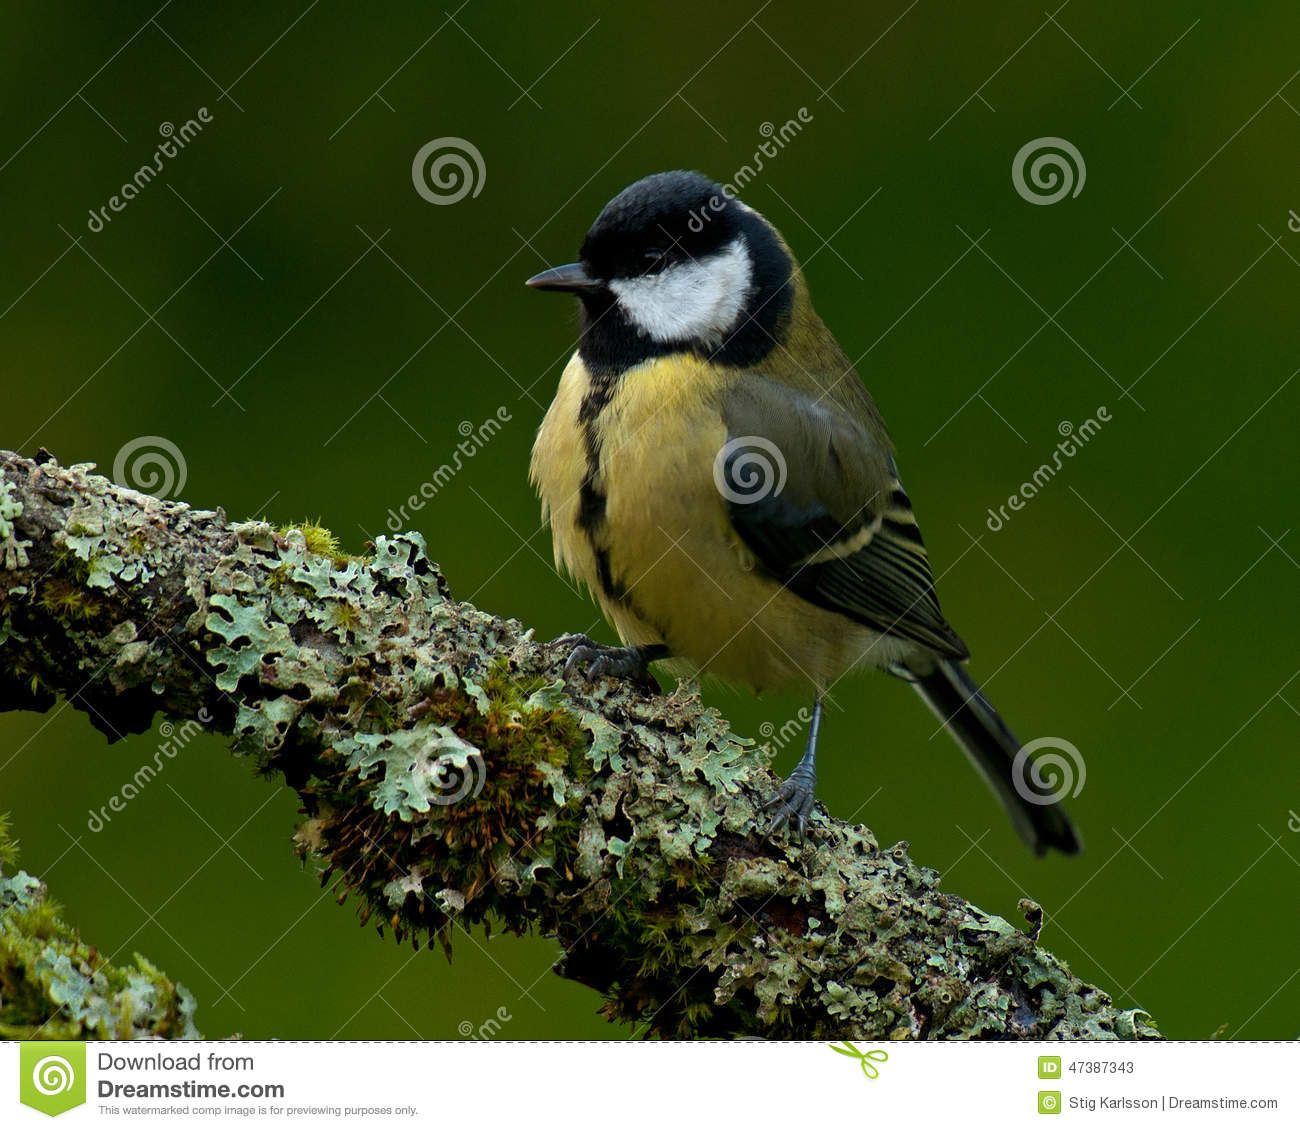 The great tit, Parus major on old branch